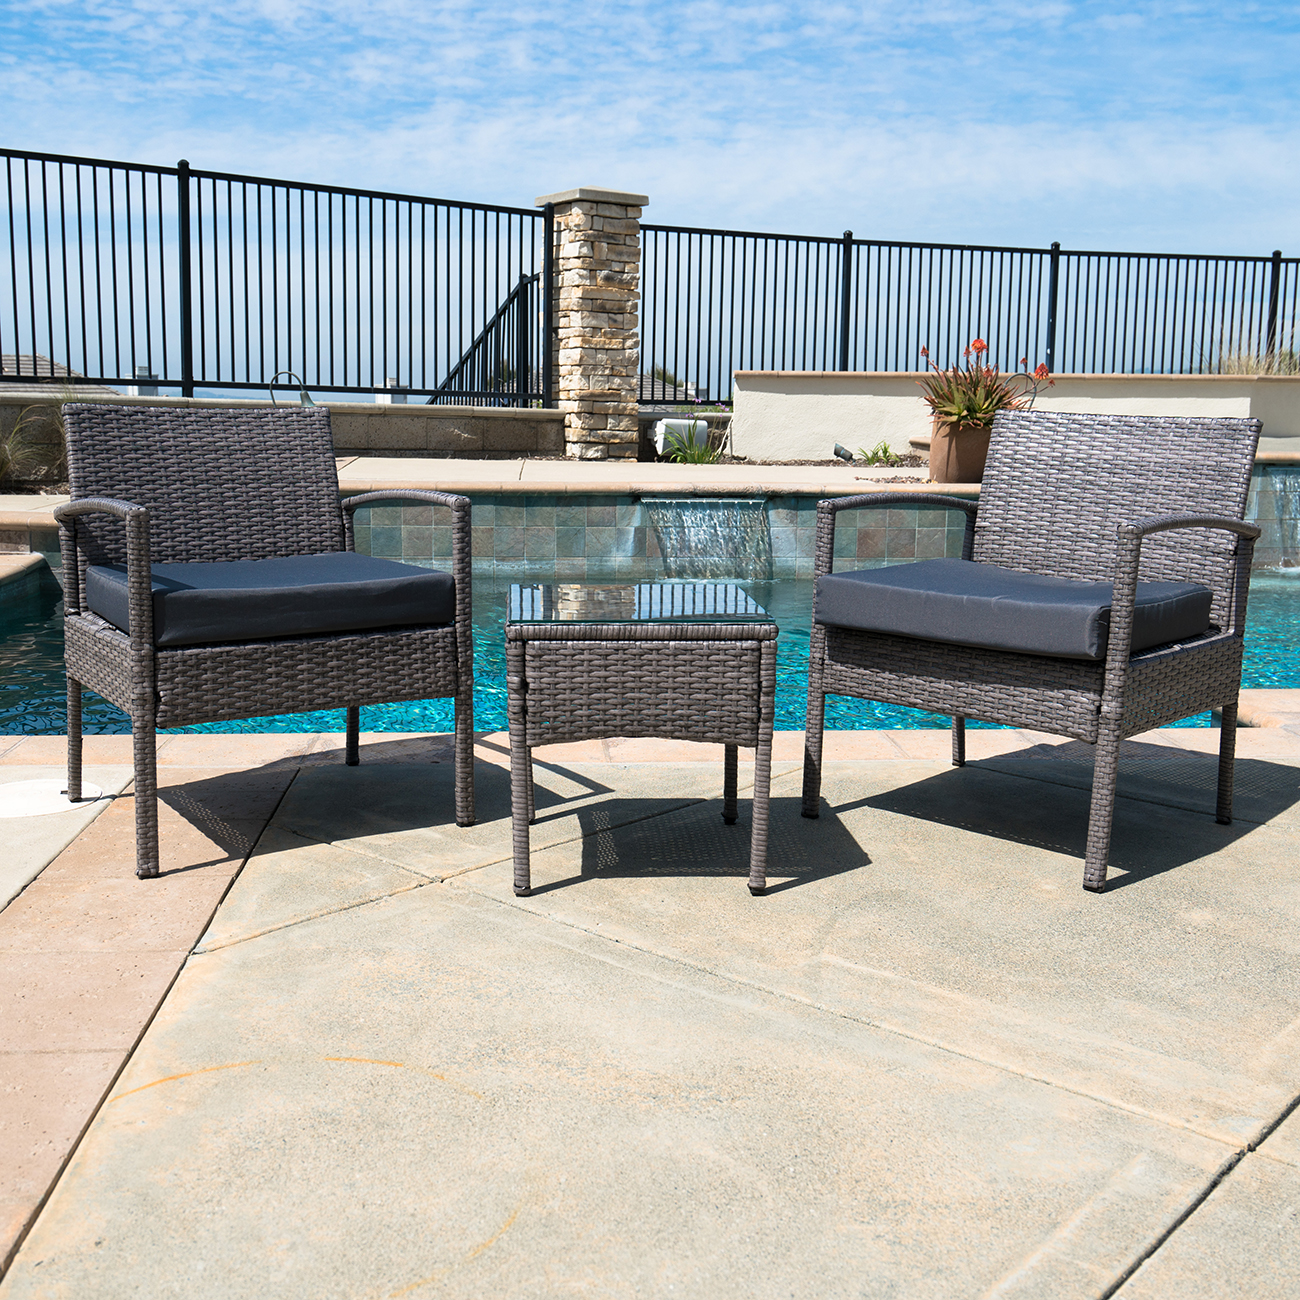 3-PCS-Outdoor-Rattan-Wicker-Patio-Chat-Chairs-amp-Table-Furniture-Set-Lounge thumbnail 9